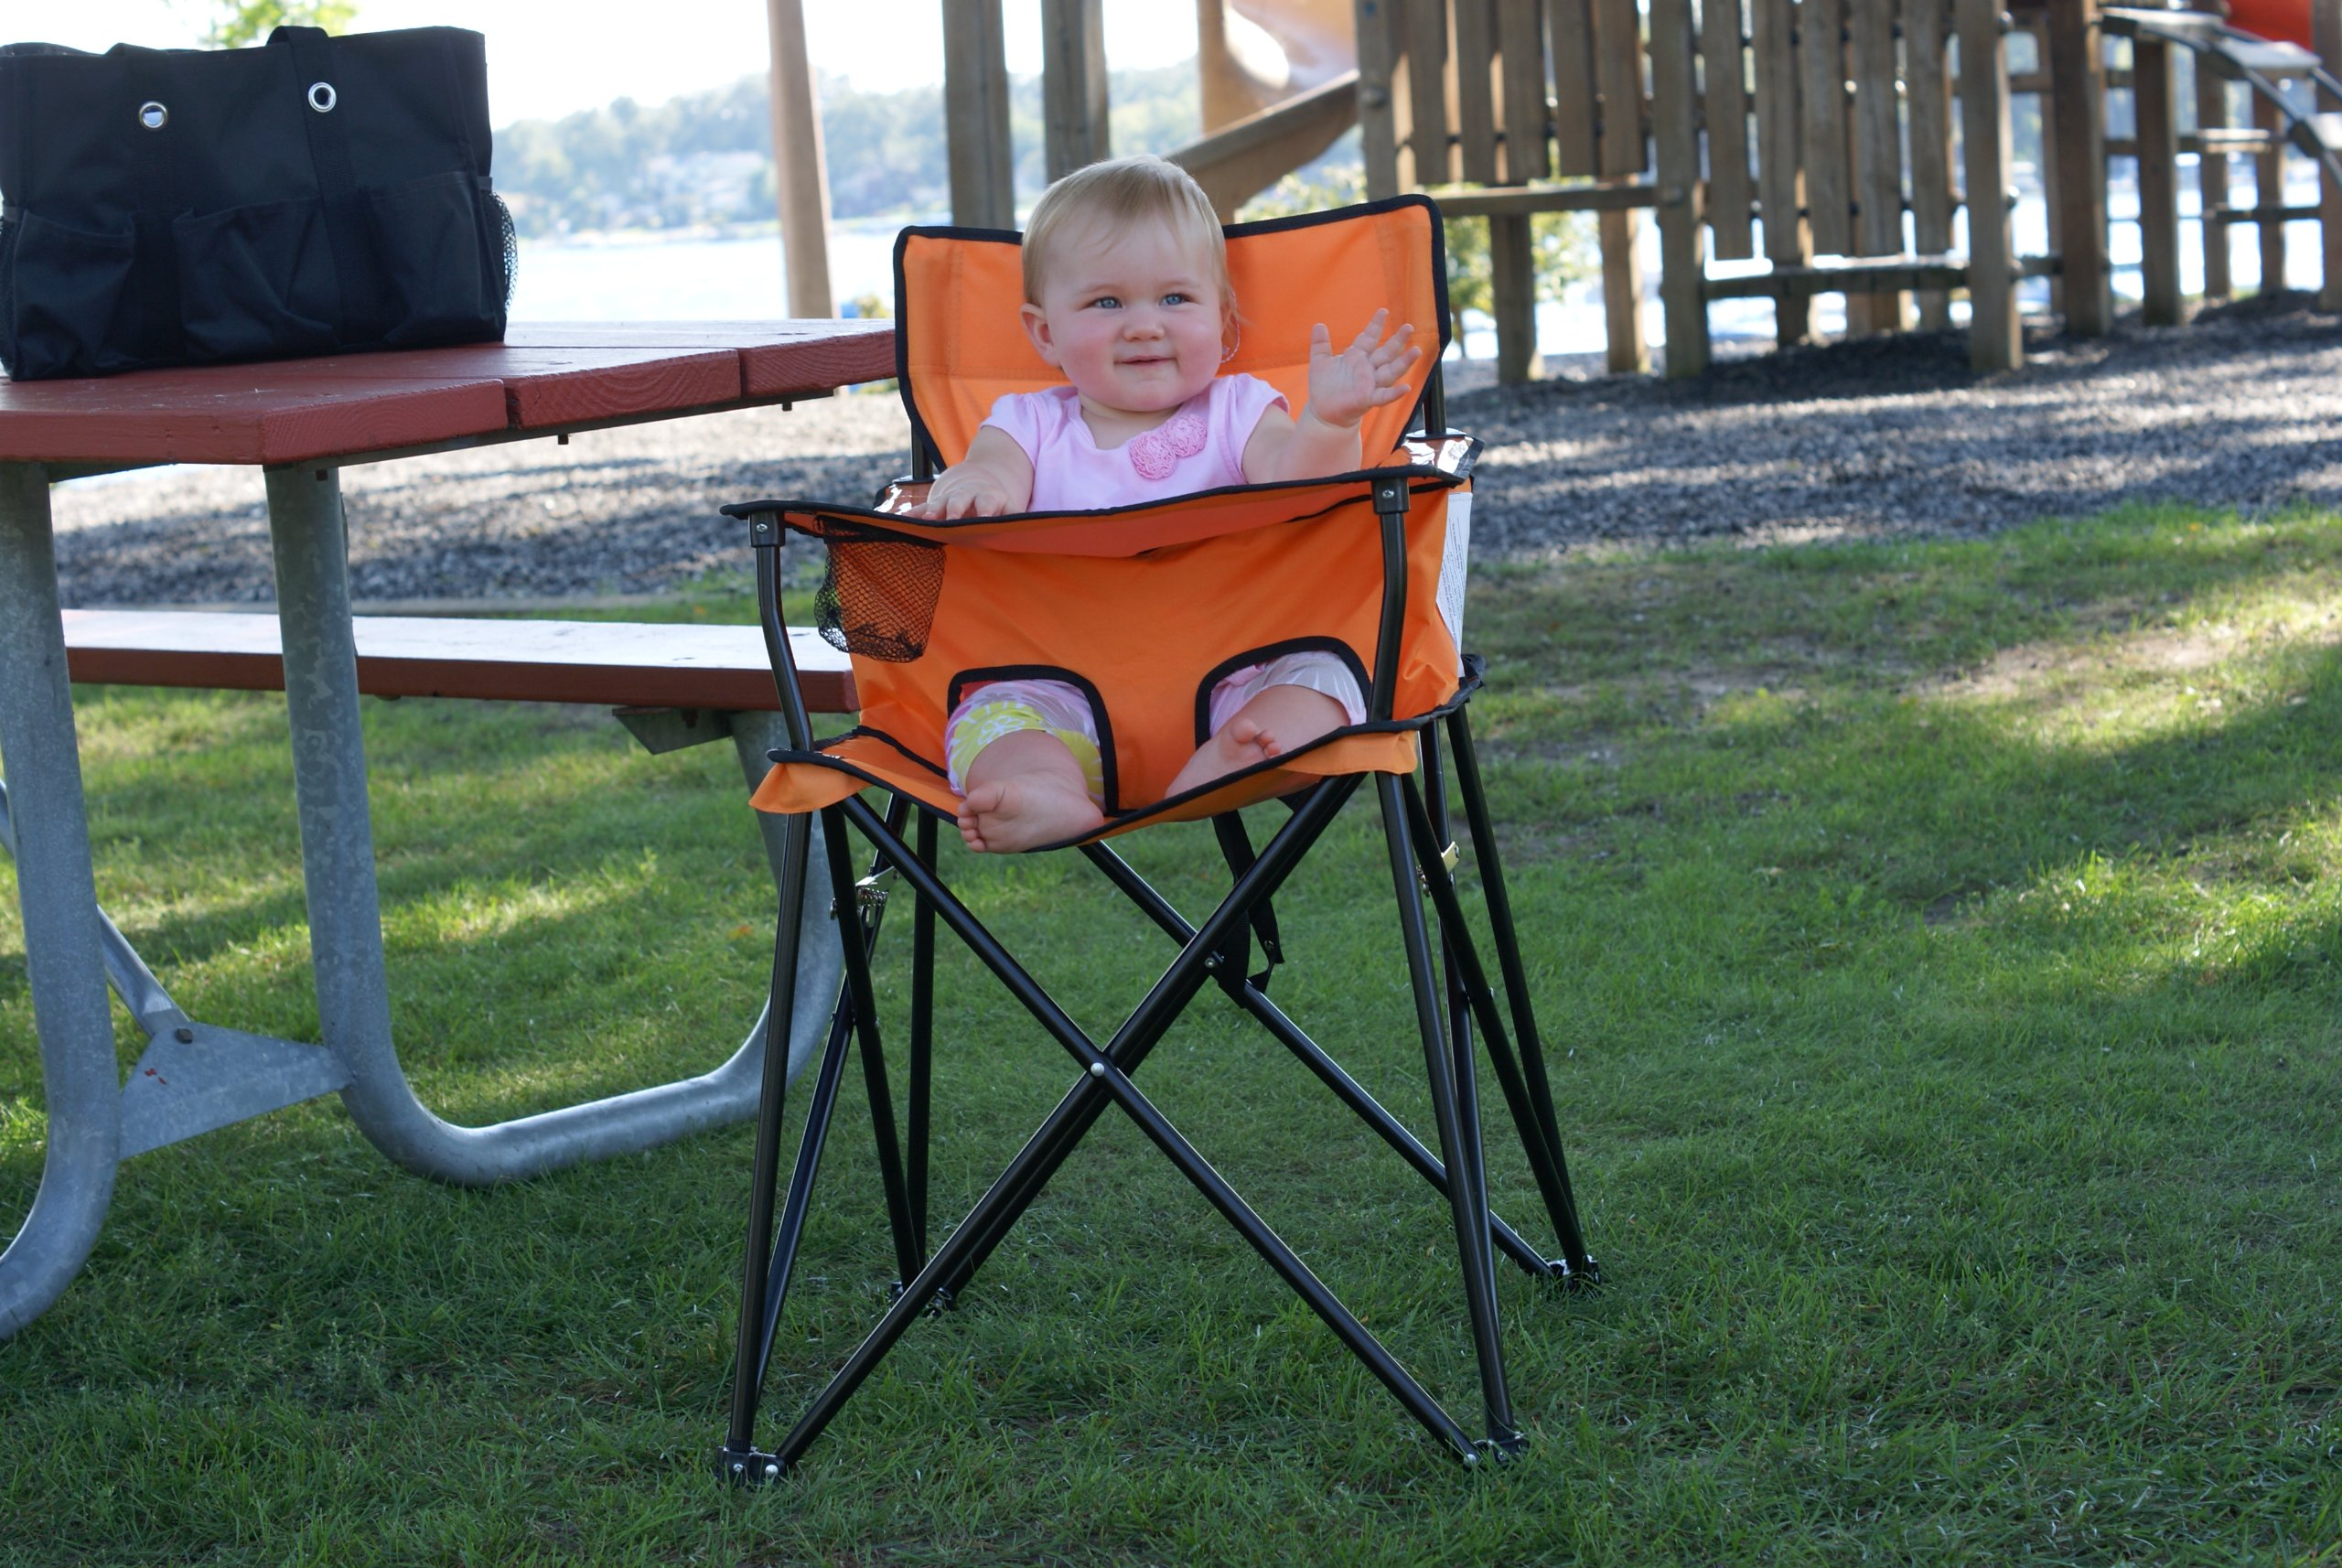 ciao baby orange portable highchair perfect for travel outdoors camping hb2002 ebay. Black Bedroom Furniture Sets. Home Design Ideas